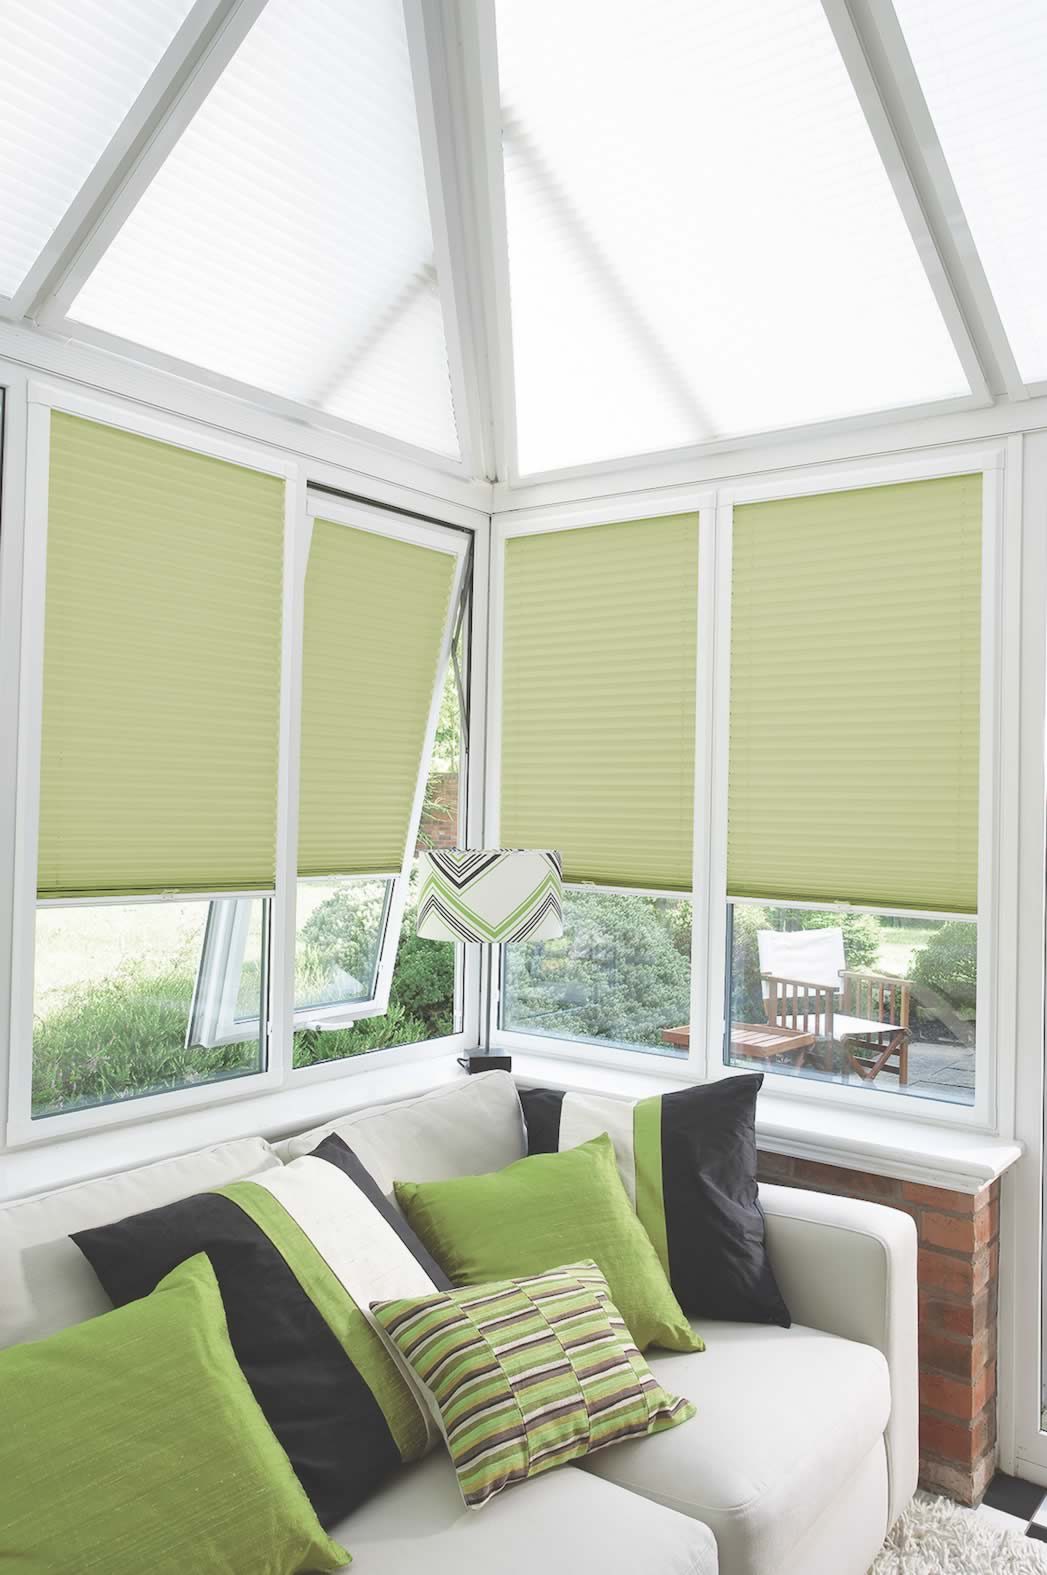 Perfect Fit Blinds - Basix Pale Green Perfect Fit Pleated